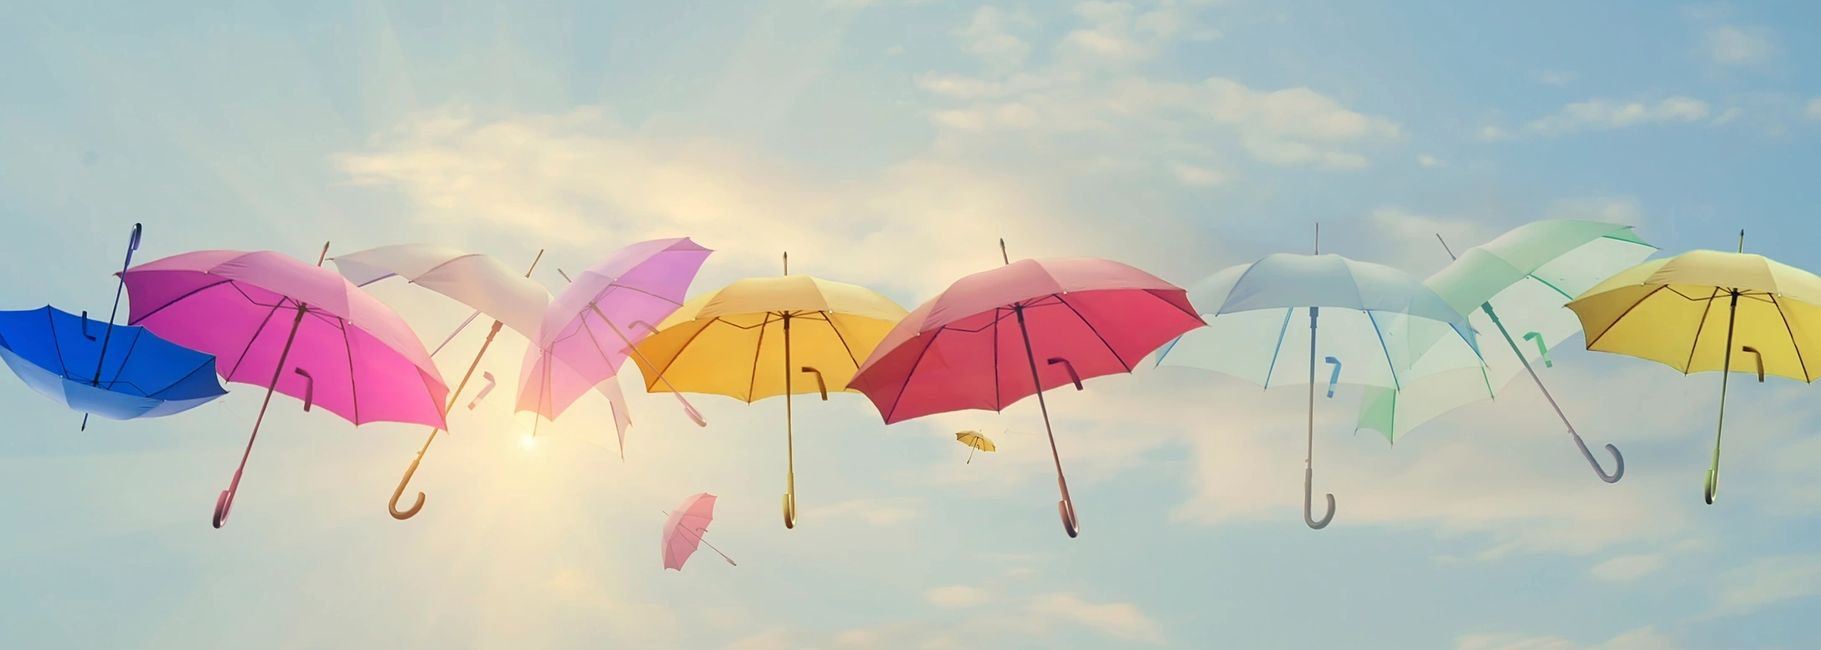 A row of ten multicolored umbrellas floating high on a mostly clear blue skied sunny day.